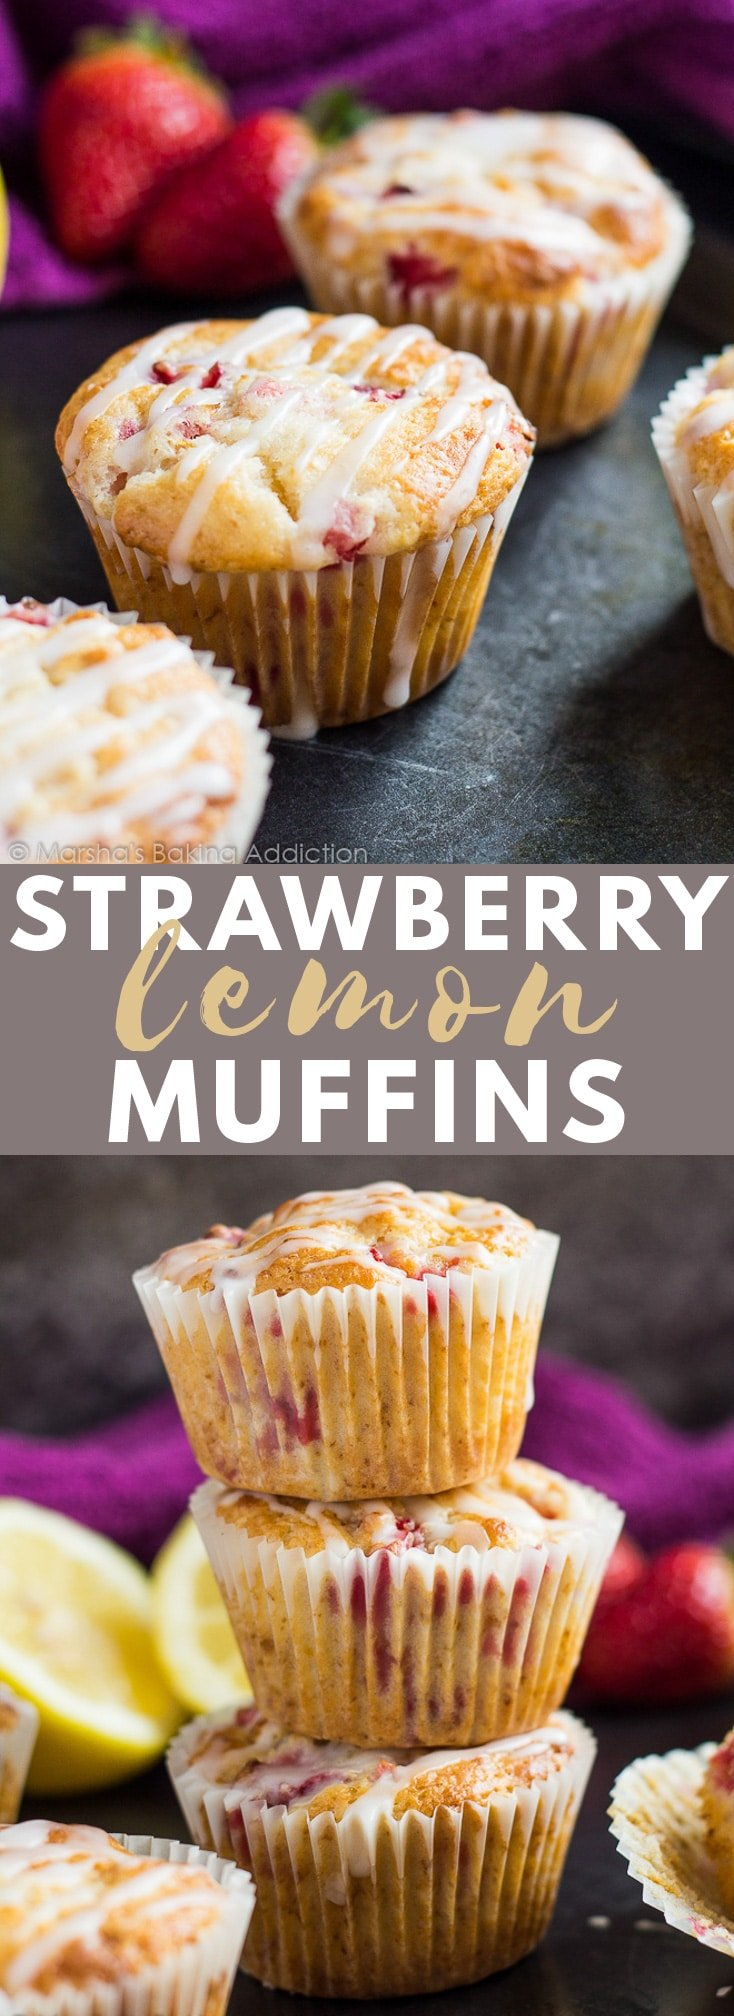 Strawberry Lemon Muffins - Deliciously moist muffins infused with lemon juice and zest, loaded with strawberries, and drizzled with a lemon glaze! #strawberry #lemon #muffins #muffinrecipes